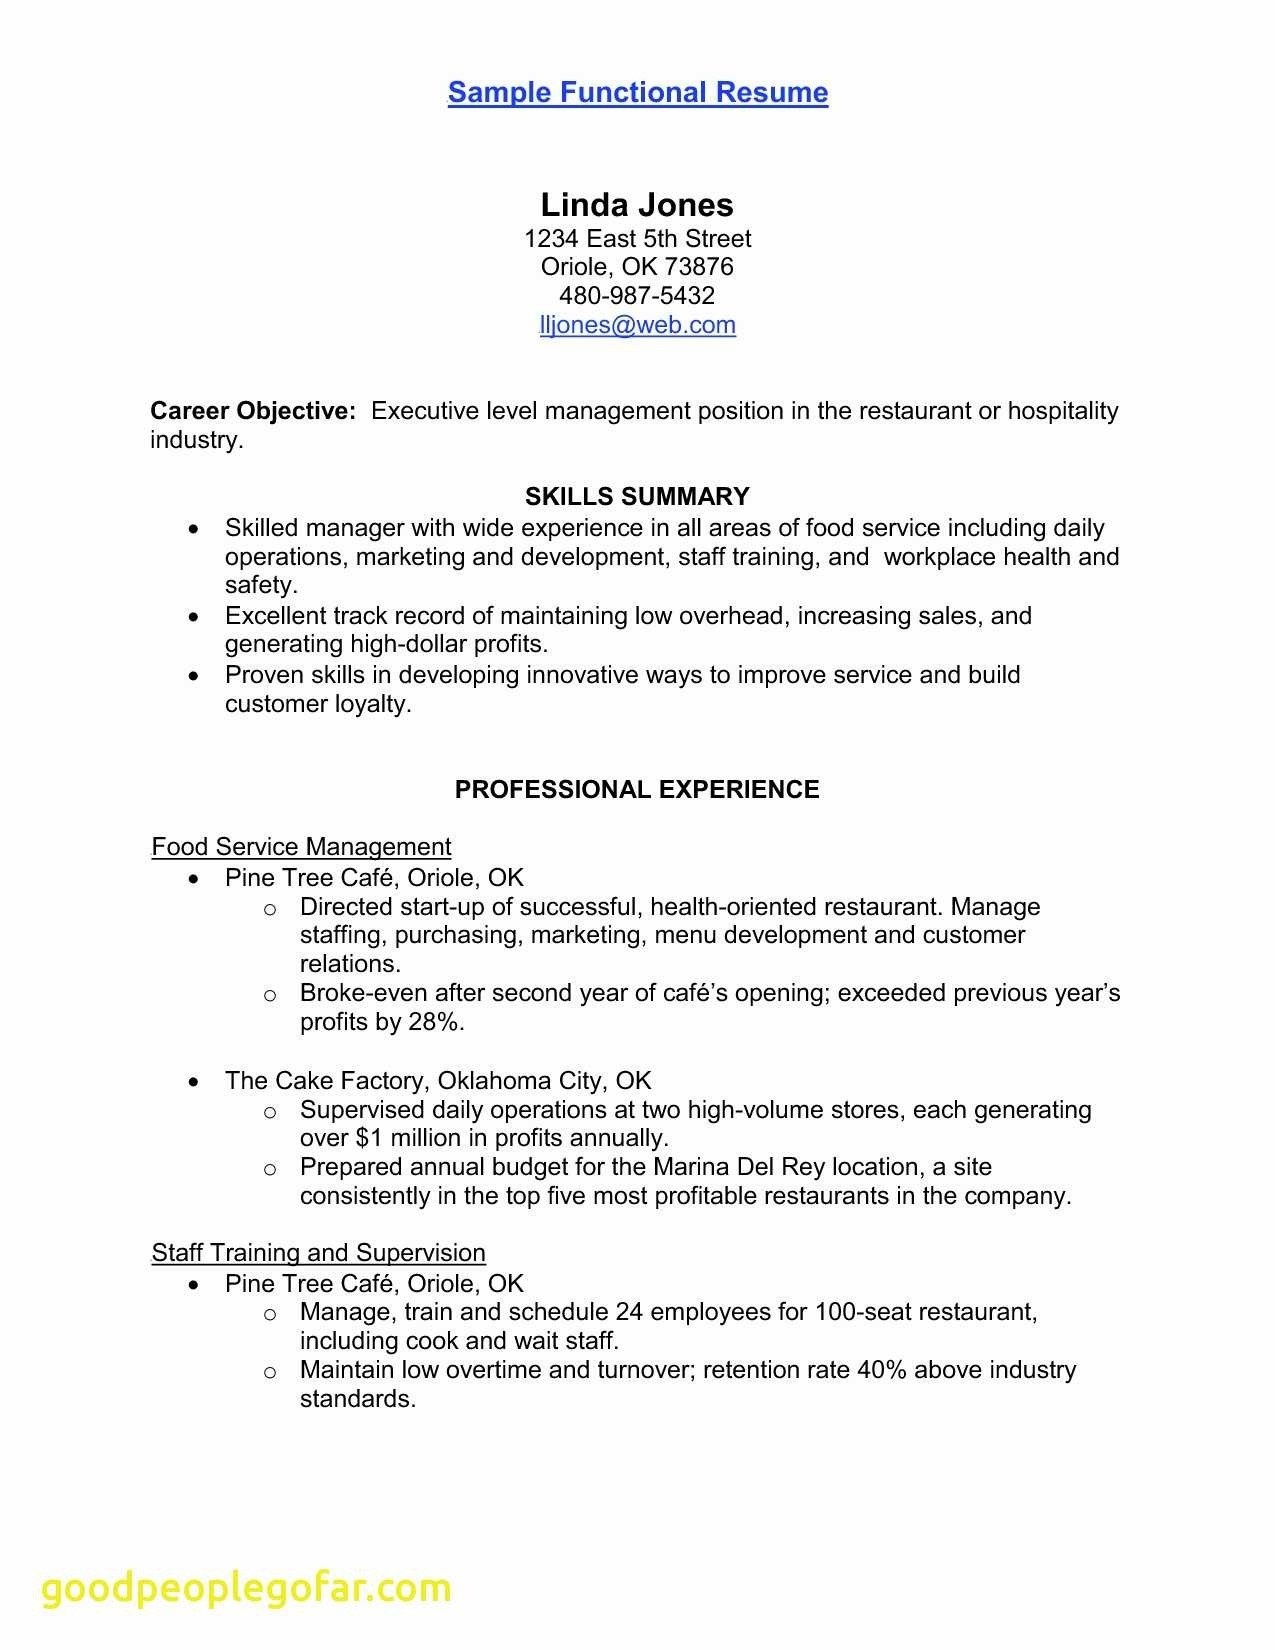 Electrical Engineering Resume Entry Level - Electrical Engineer Resume Ressume Template Lovely Type Resume